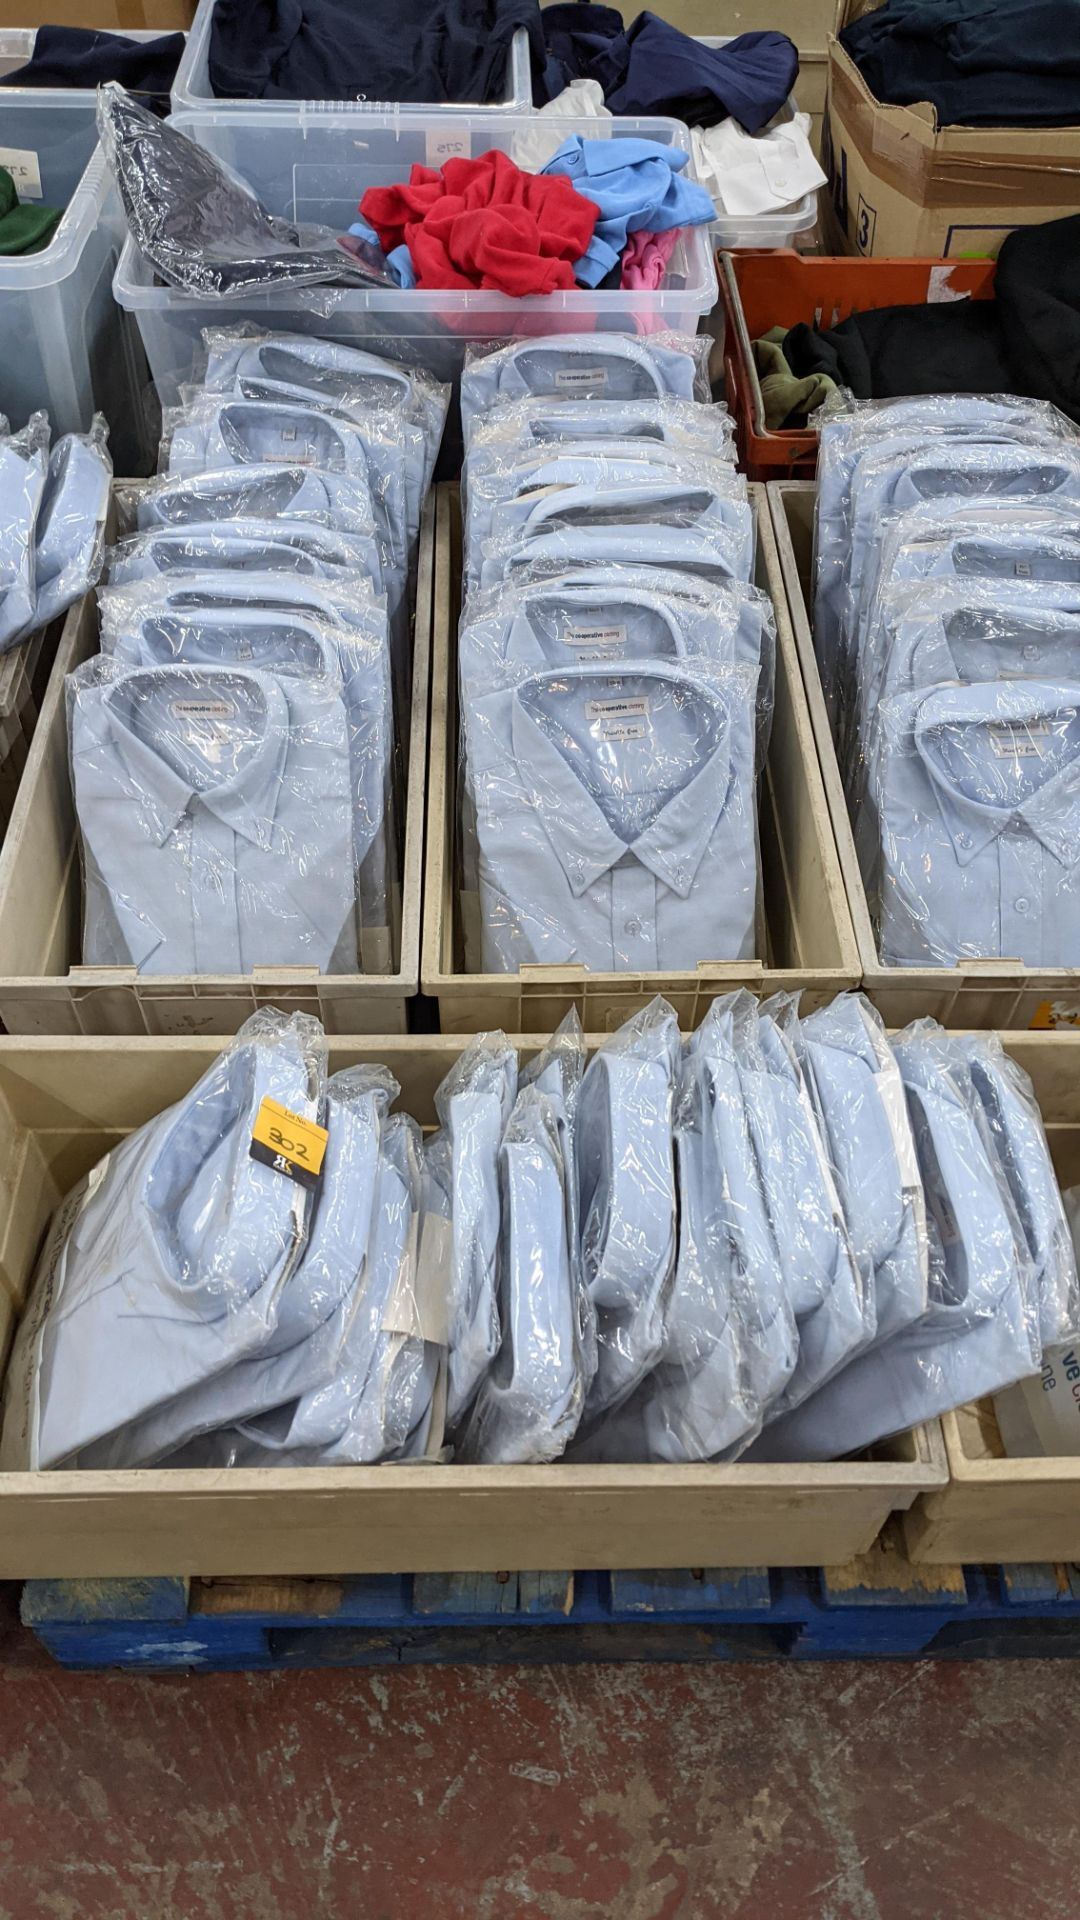 Approx 35 off blue short sleeve shirts with button down collars - the contents of 3 crates. NB cra